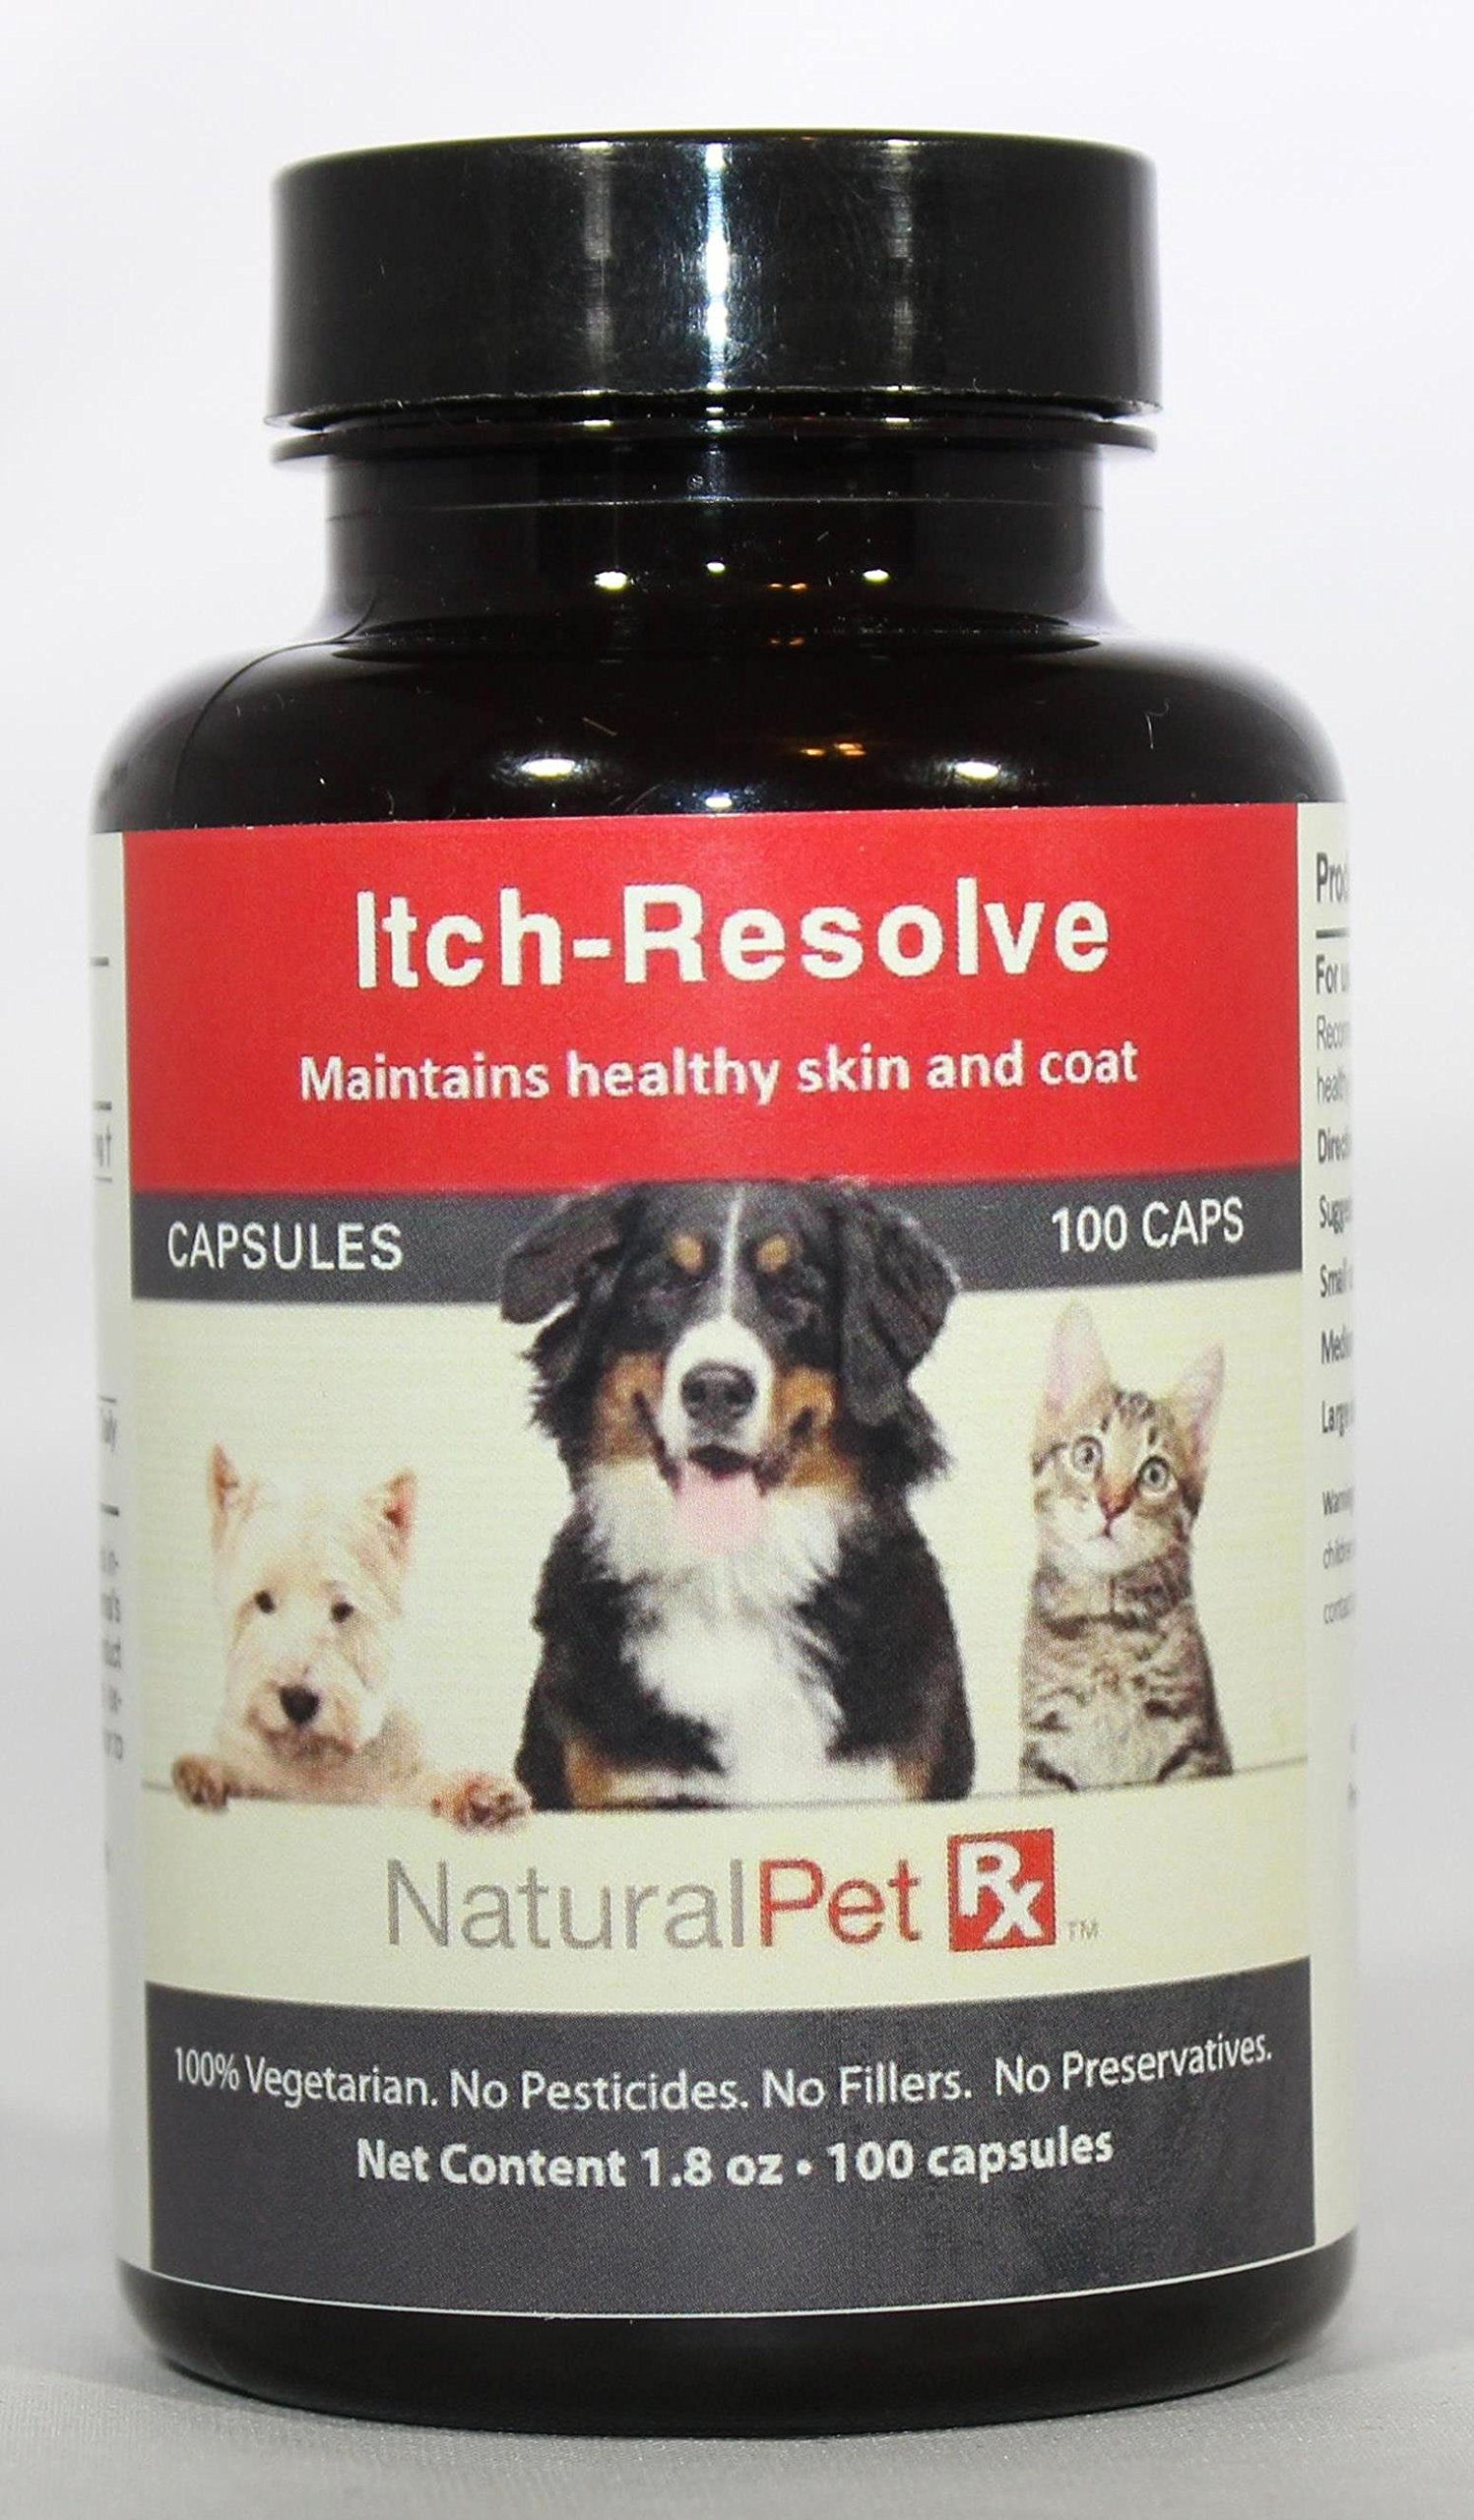 Natural Pet RX Itch Resolve Healthy Skin and Coat Support (100 Capsules)